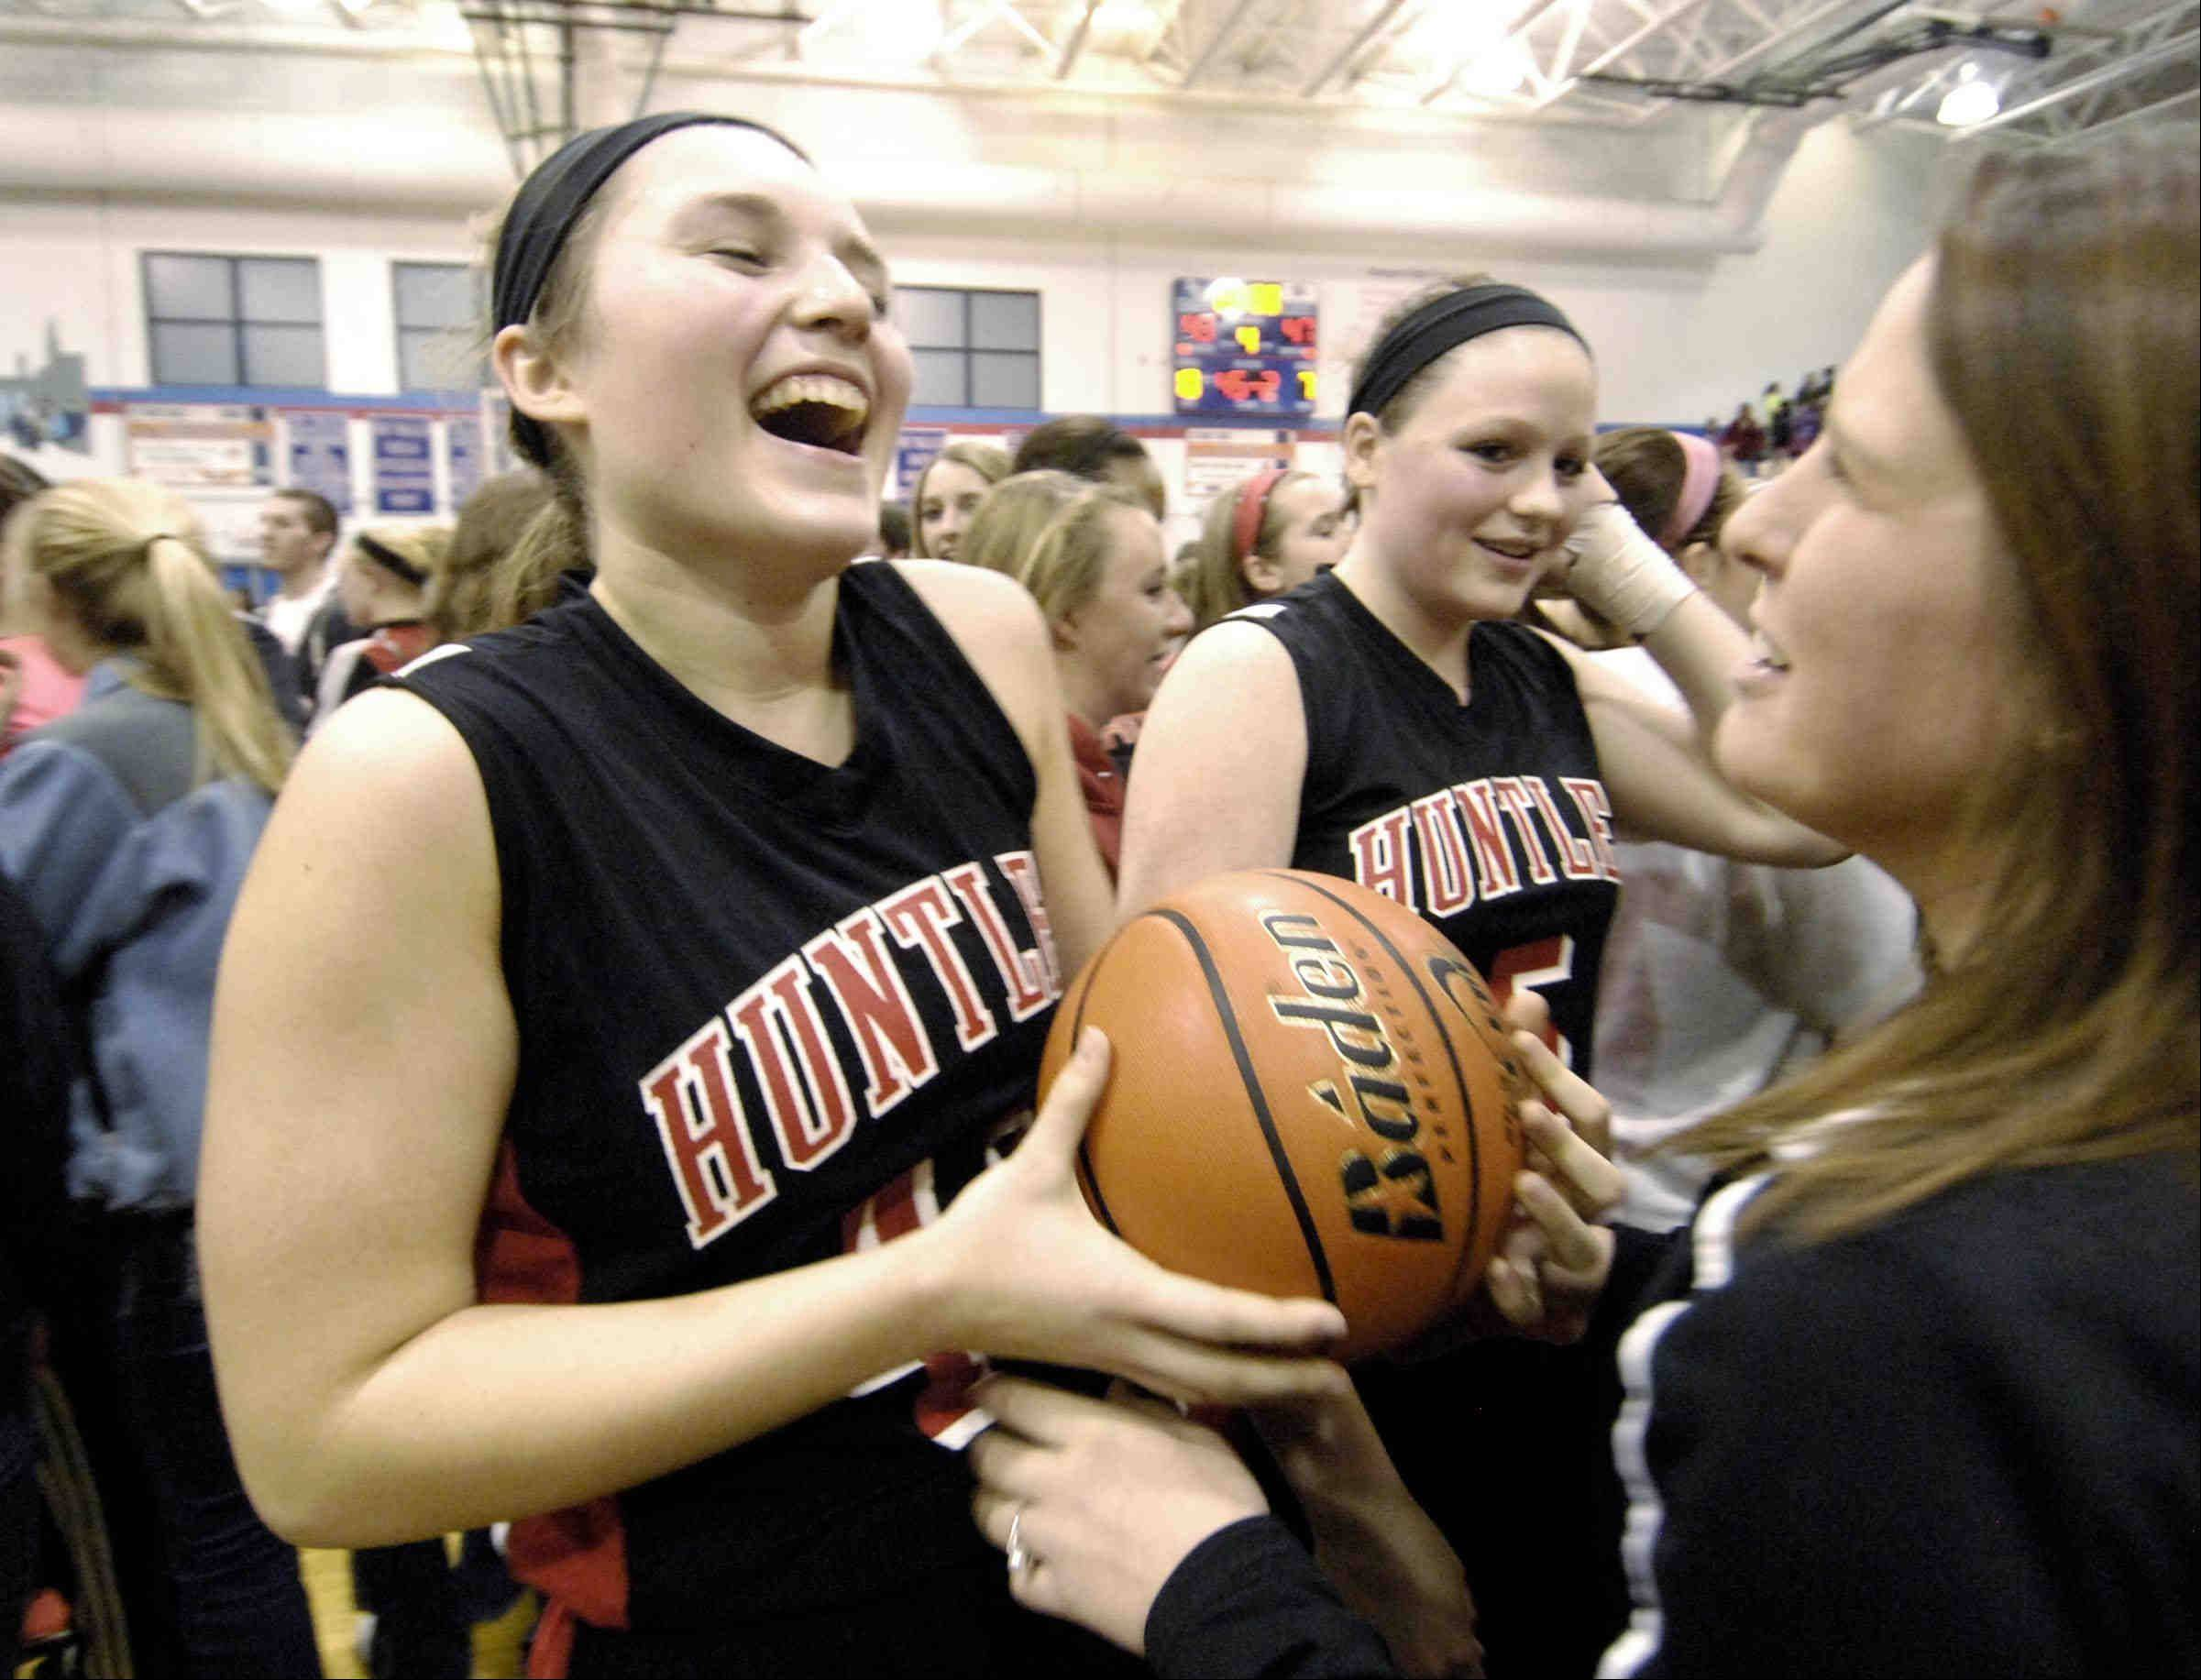 Images: Wheaton Warrenville South vs. Huntley, girls basketball